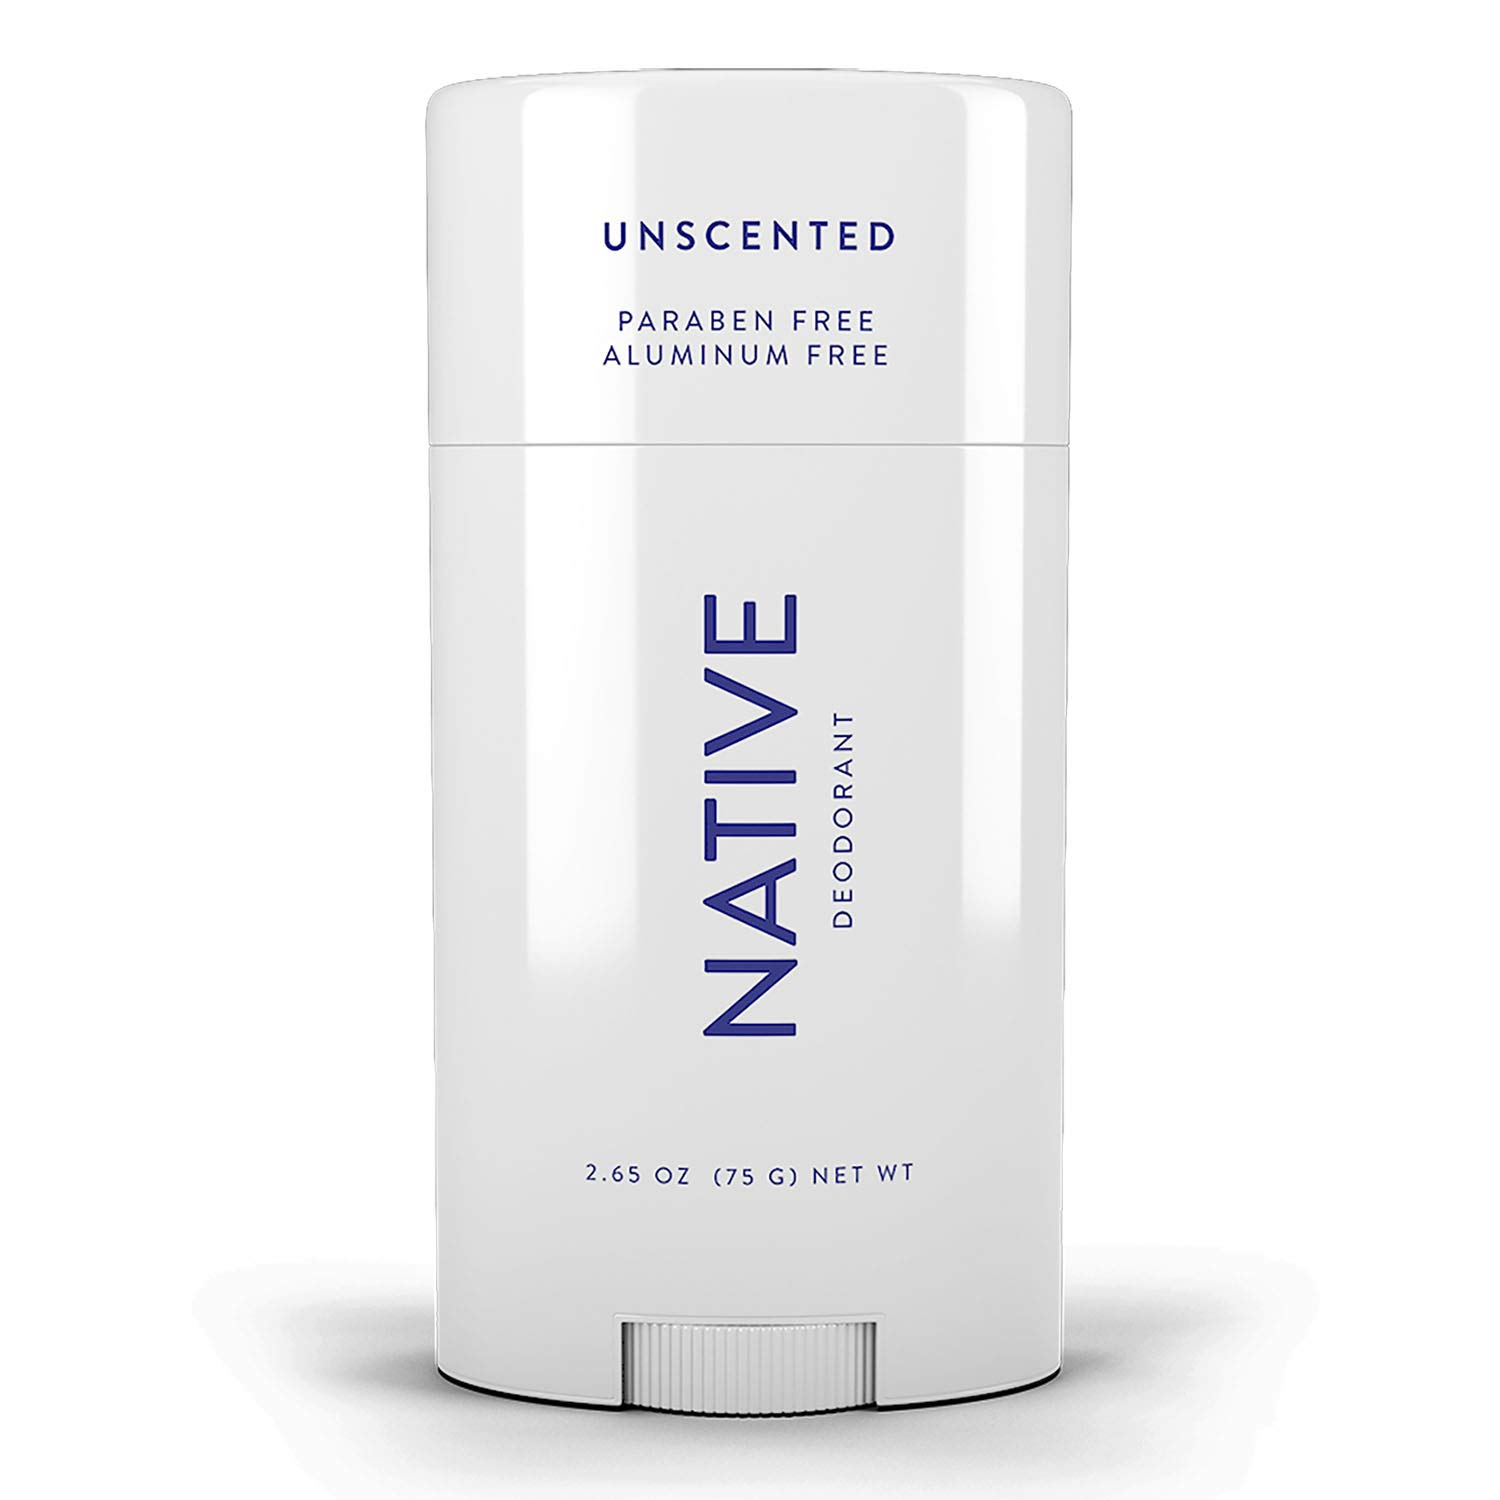 Native Deodorant - Natural Deodorant - Vegan, Gluten Free, Cruelty Free - Free of Aluminum, Parabens & Sulfates - Born in the USA - Unscented